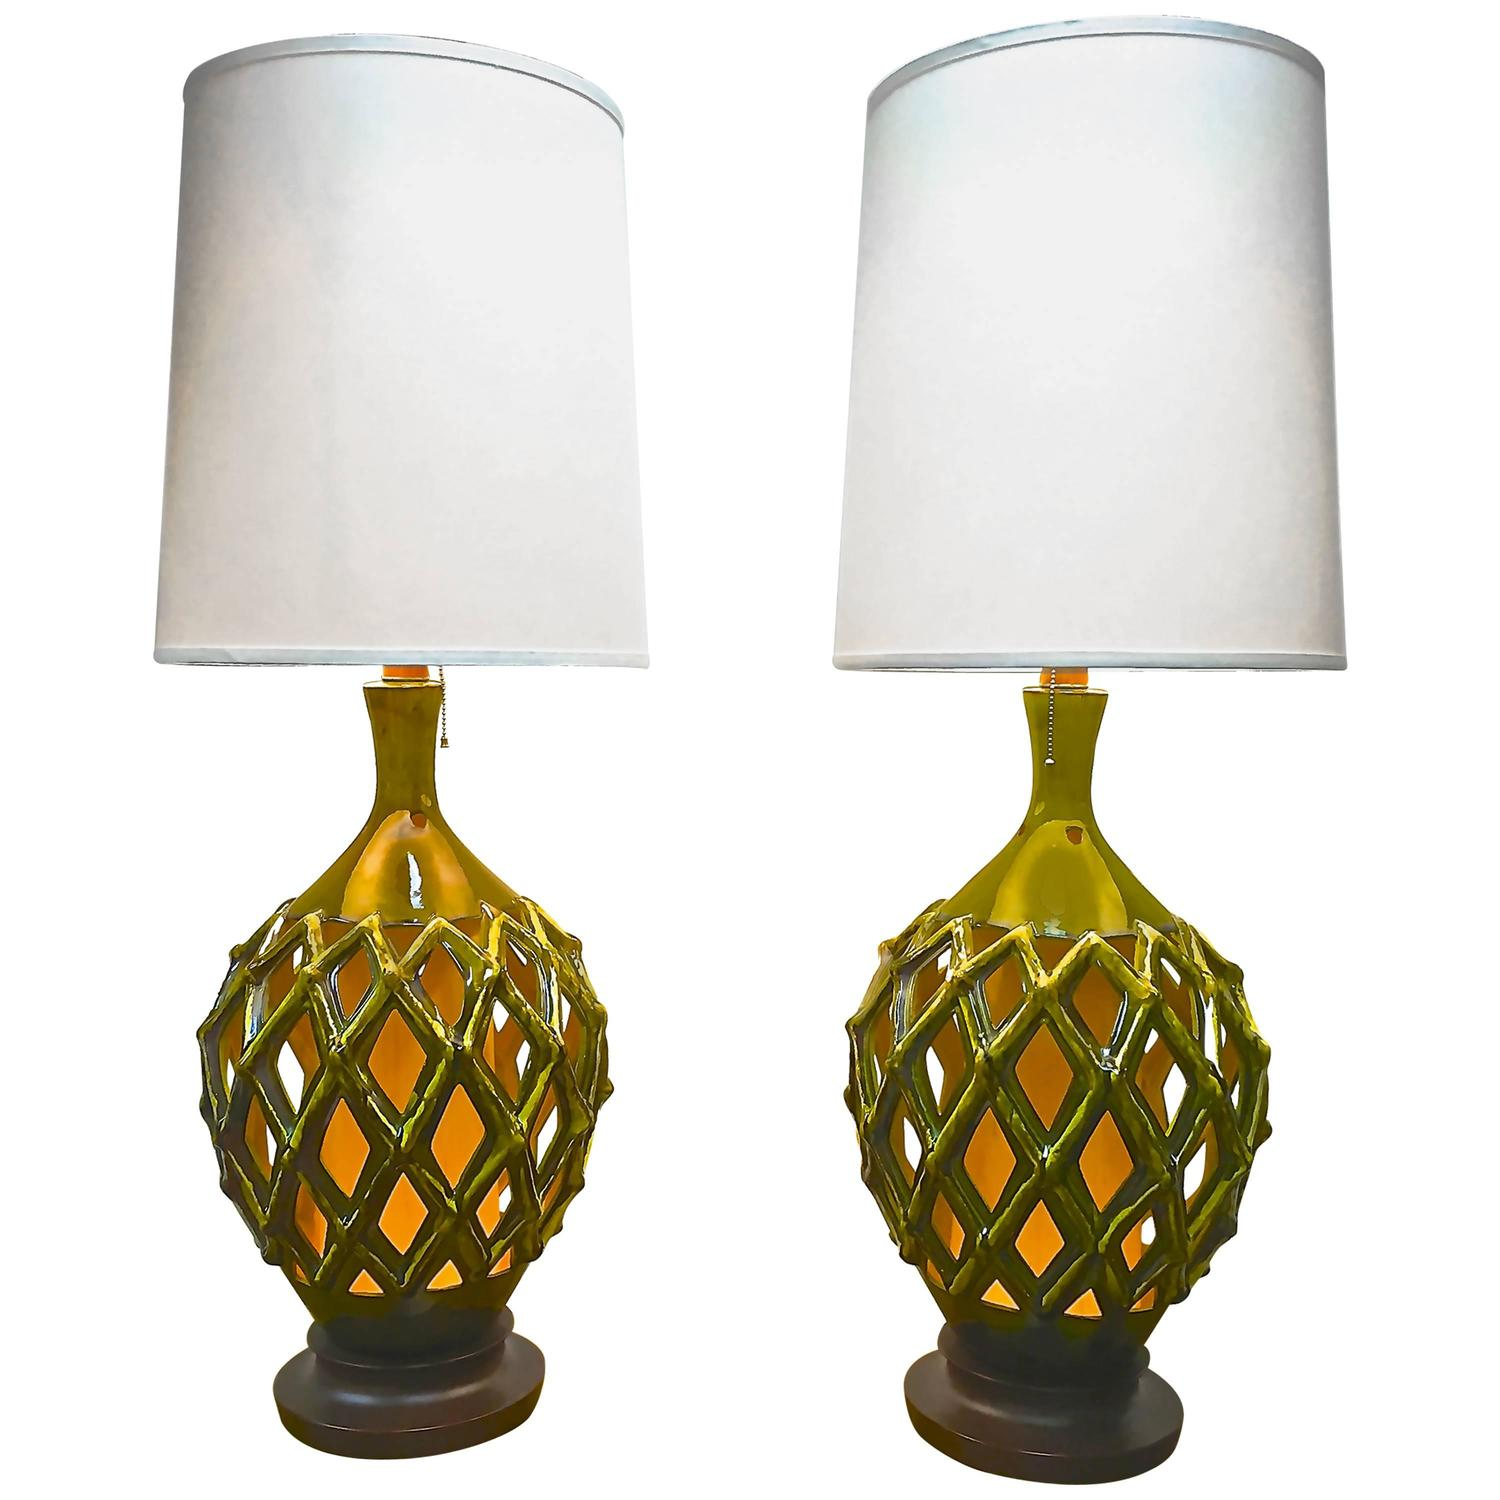 mid century modern ceramic lattice lamps at 1stdibs. Black Bedroom Furniture Sets. Home Design Ideas